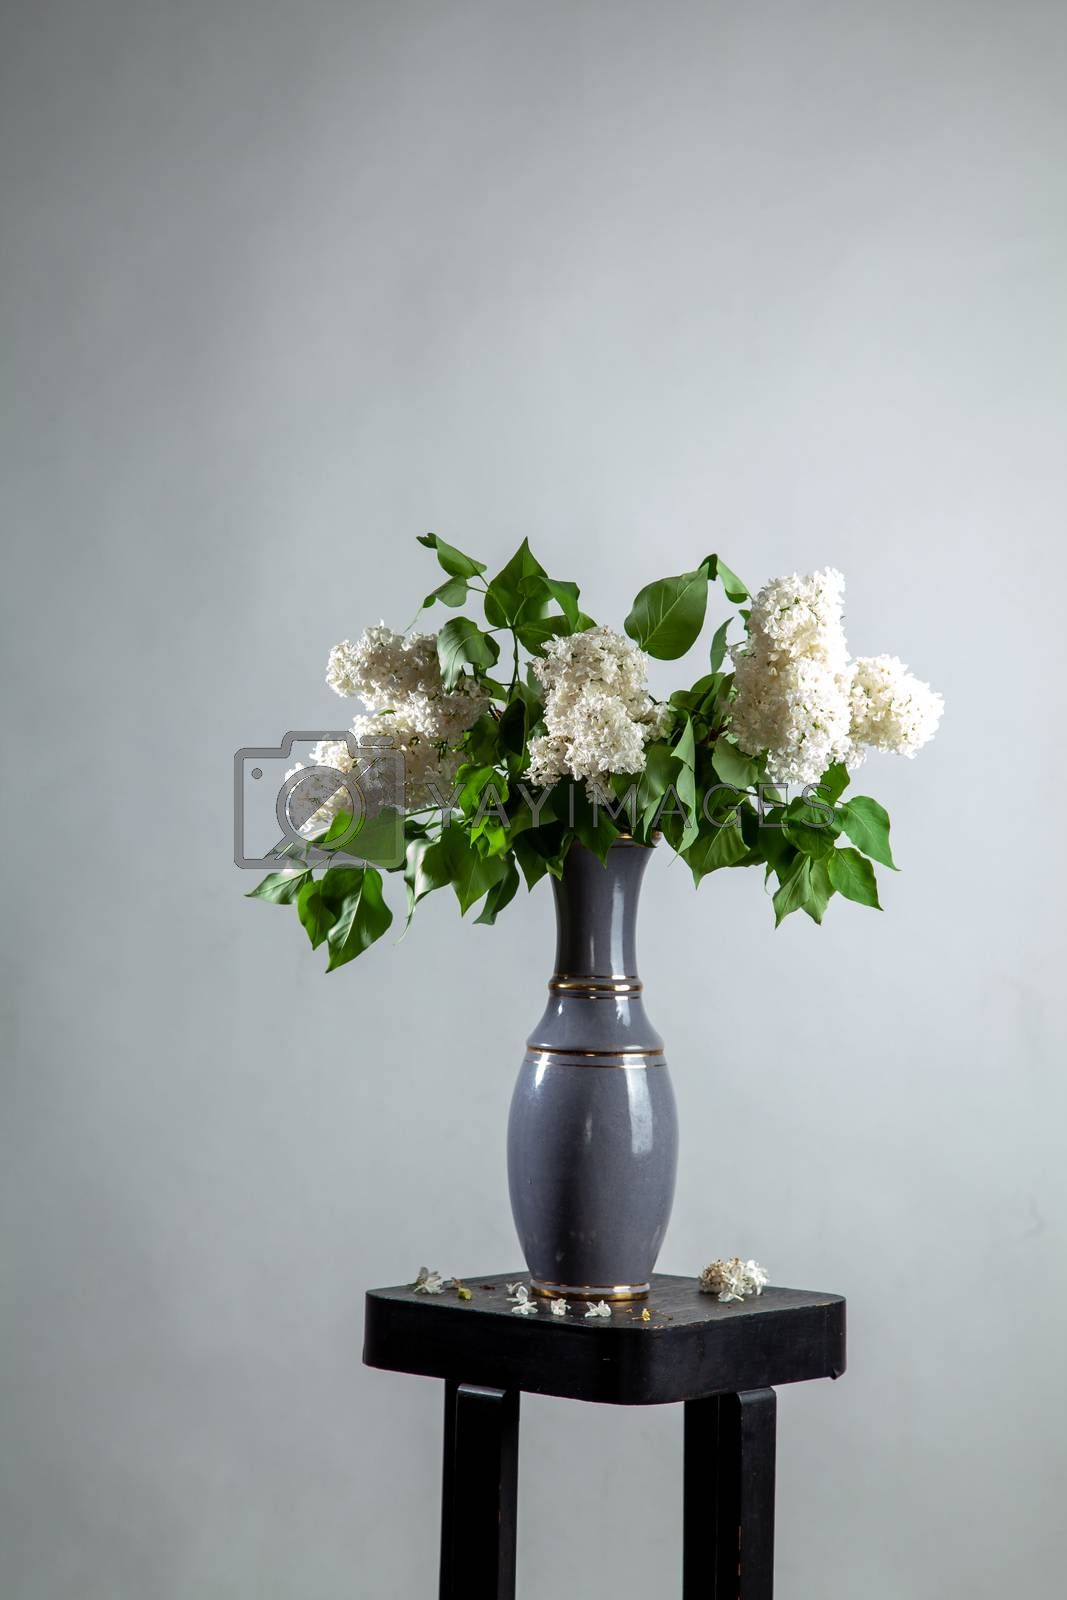 White branches of lilac in vase on gray background. Spring branch of blooming lilac on the table with gray background. Fallen lilac flowers on the table.